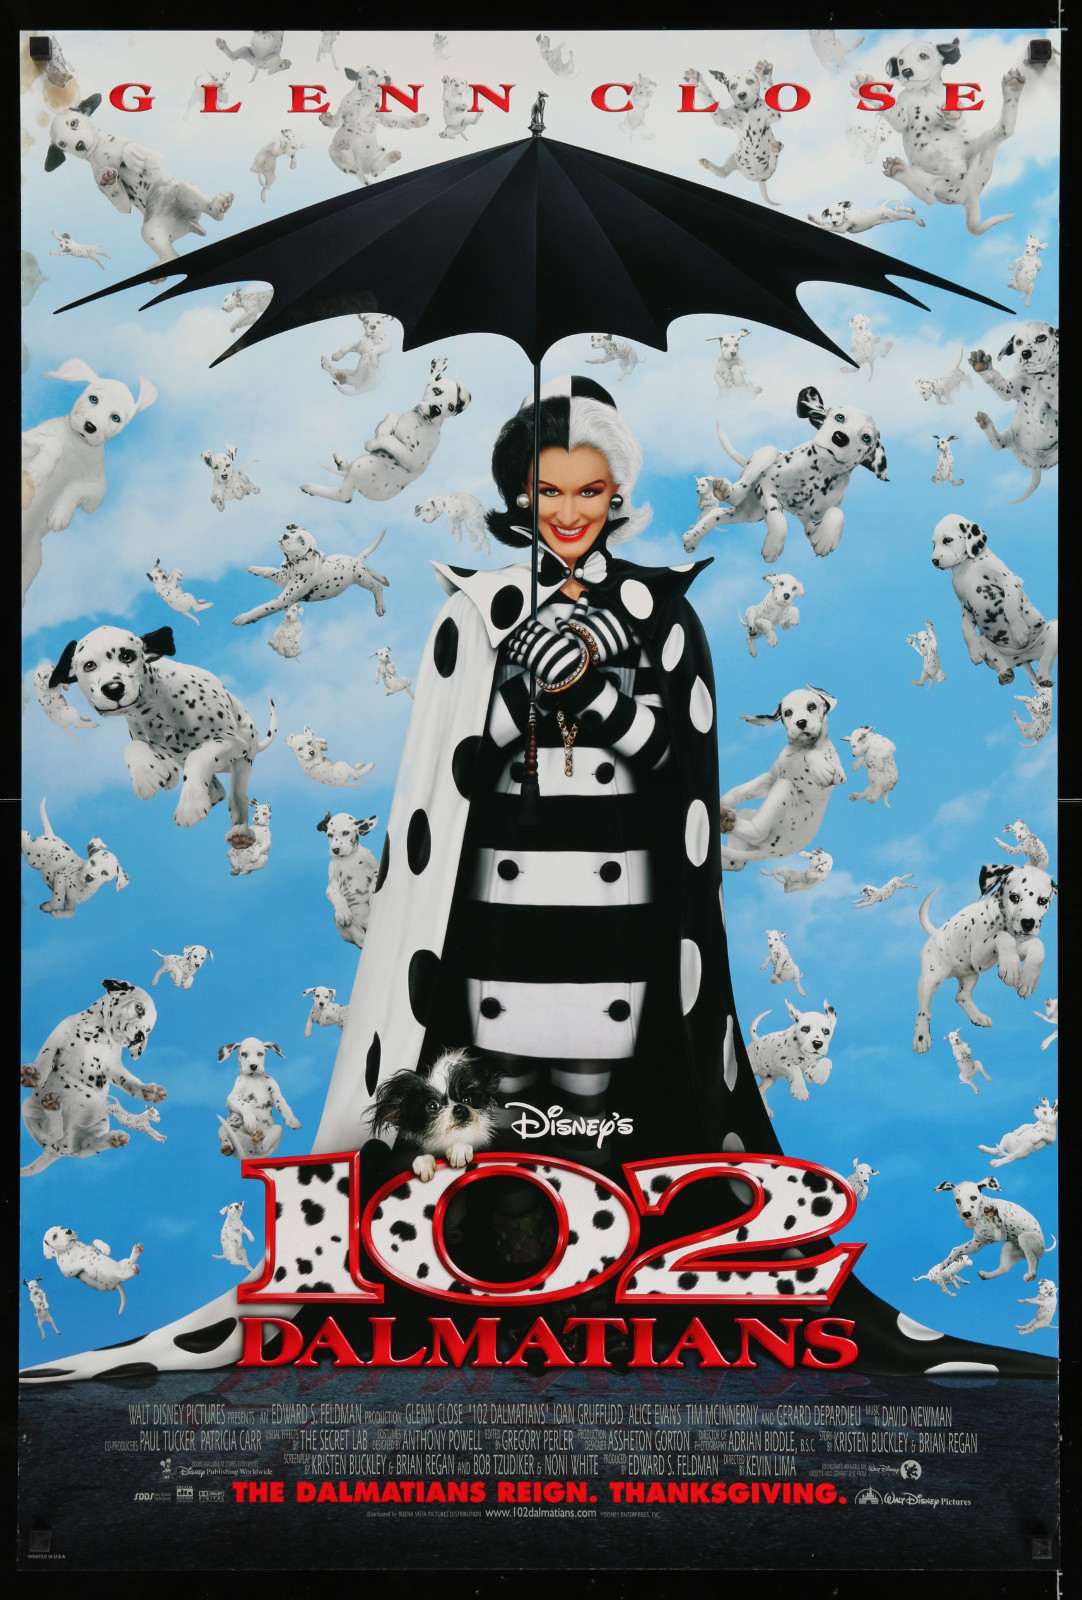 102 Dalmatians 2A446 A Part Of A Lot 17 Unfolded Mostly Double-Sided 27X40 One-Sheets '90S-00S Great Movie Images!